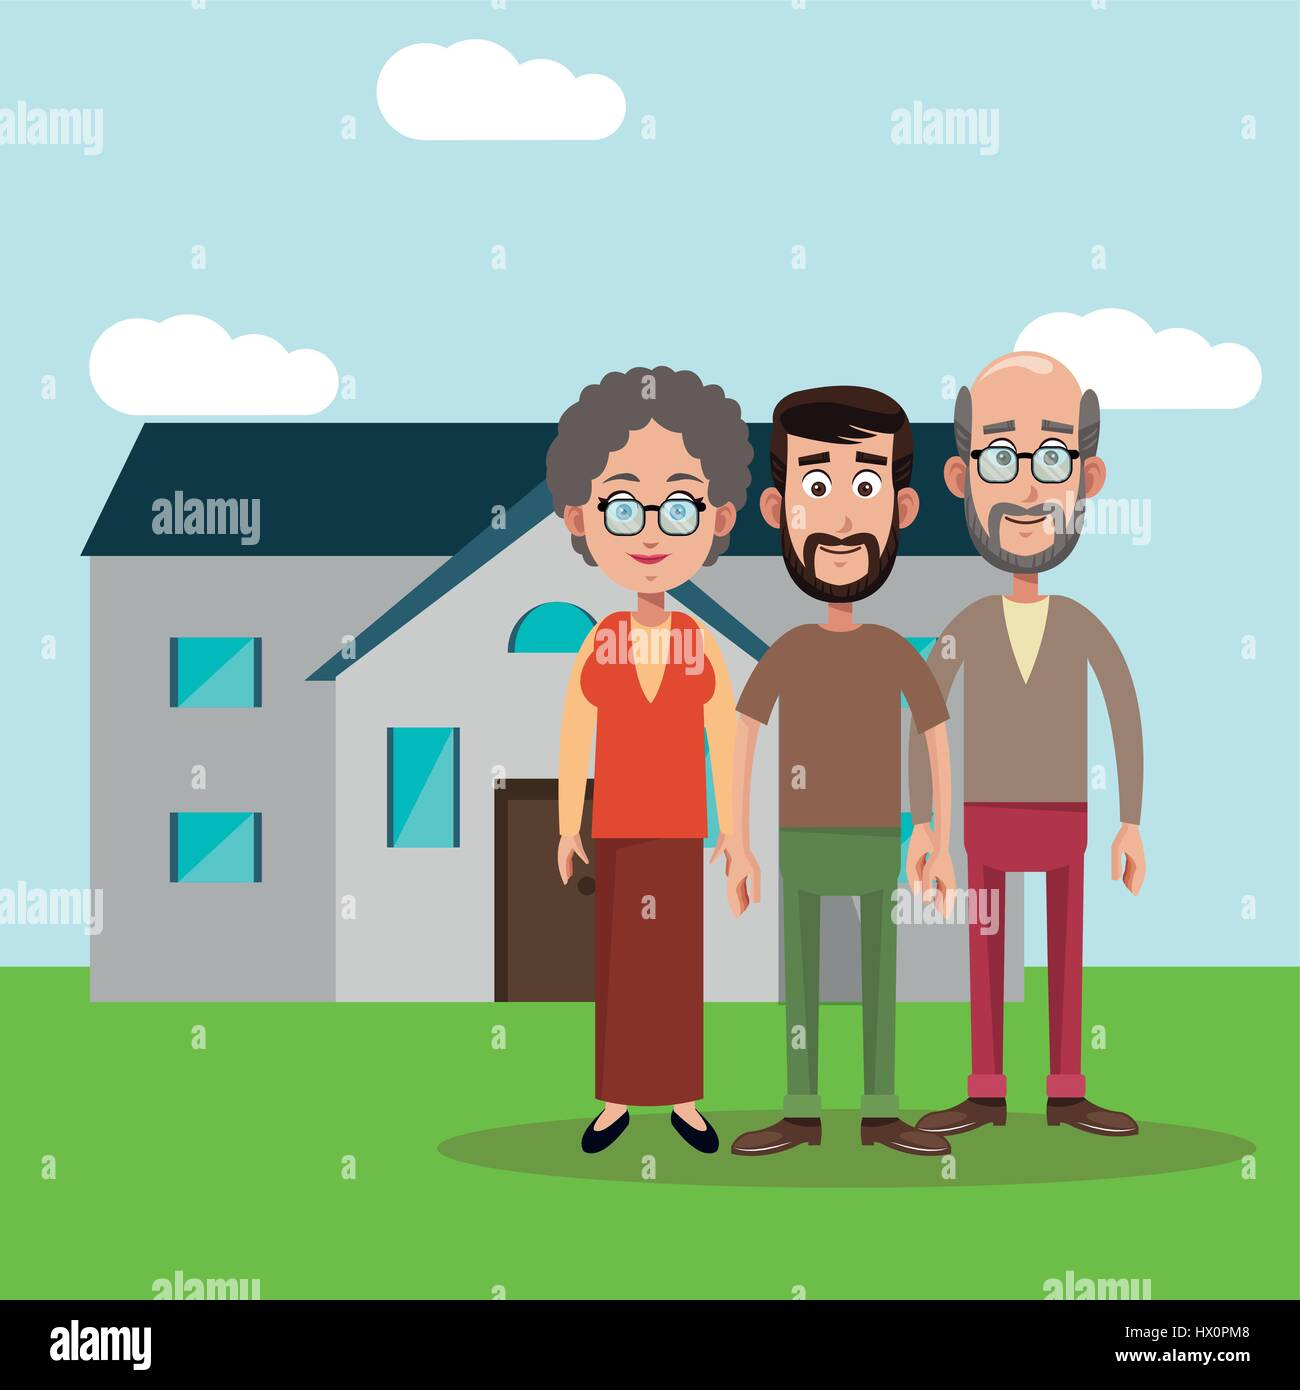 family members house image - Stock Vector